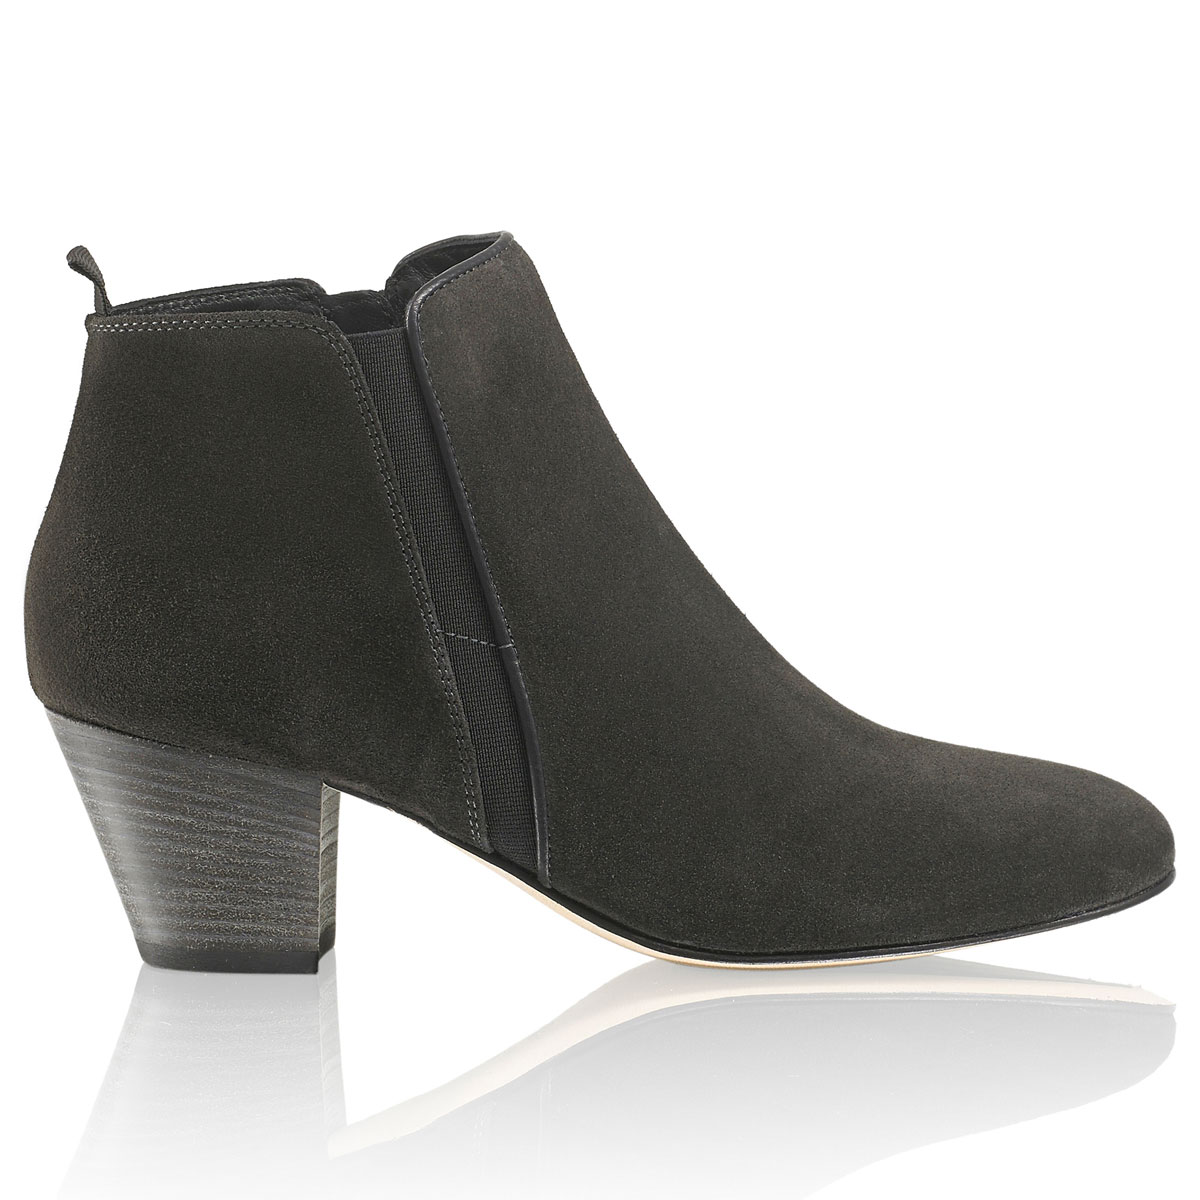 Russell and Bromley FAB-DRY Ankle Boot